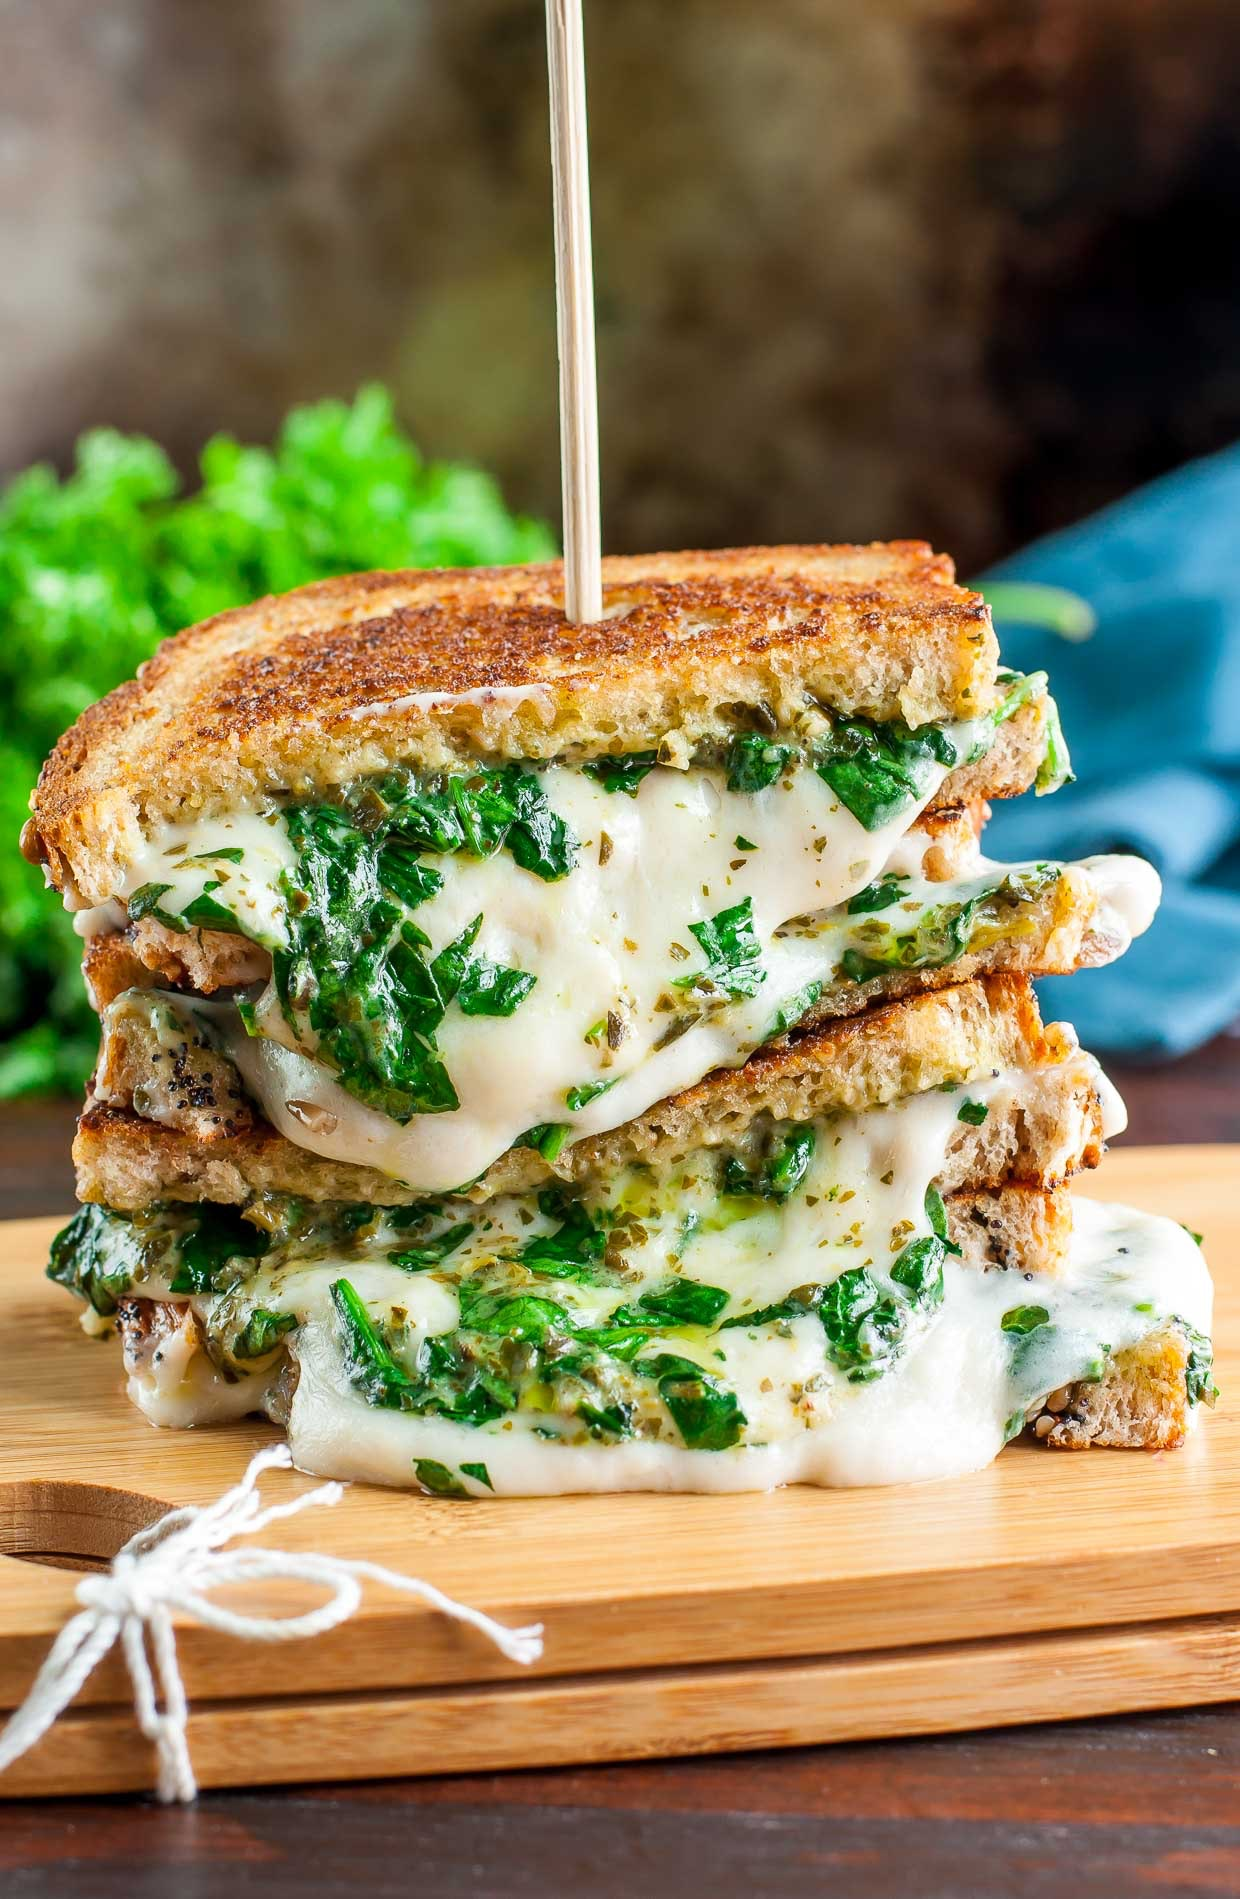 Extra Cheesy Vegan Grilled Cheese Three Ways Spinach Pesto Sandwich 824